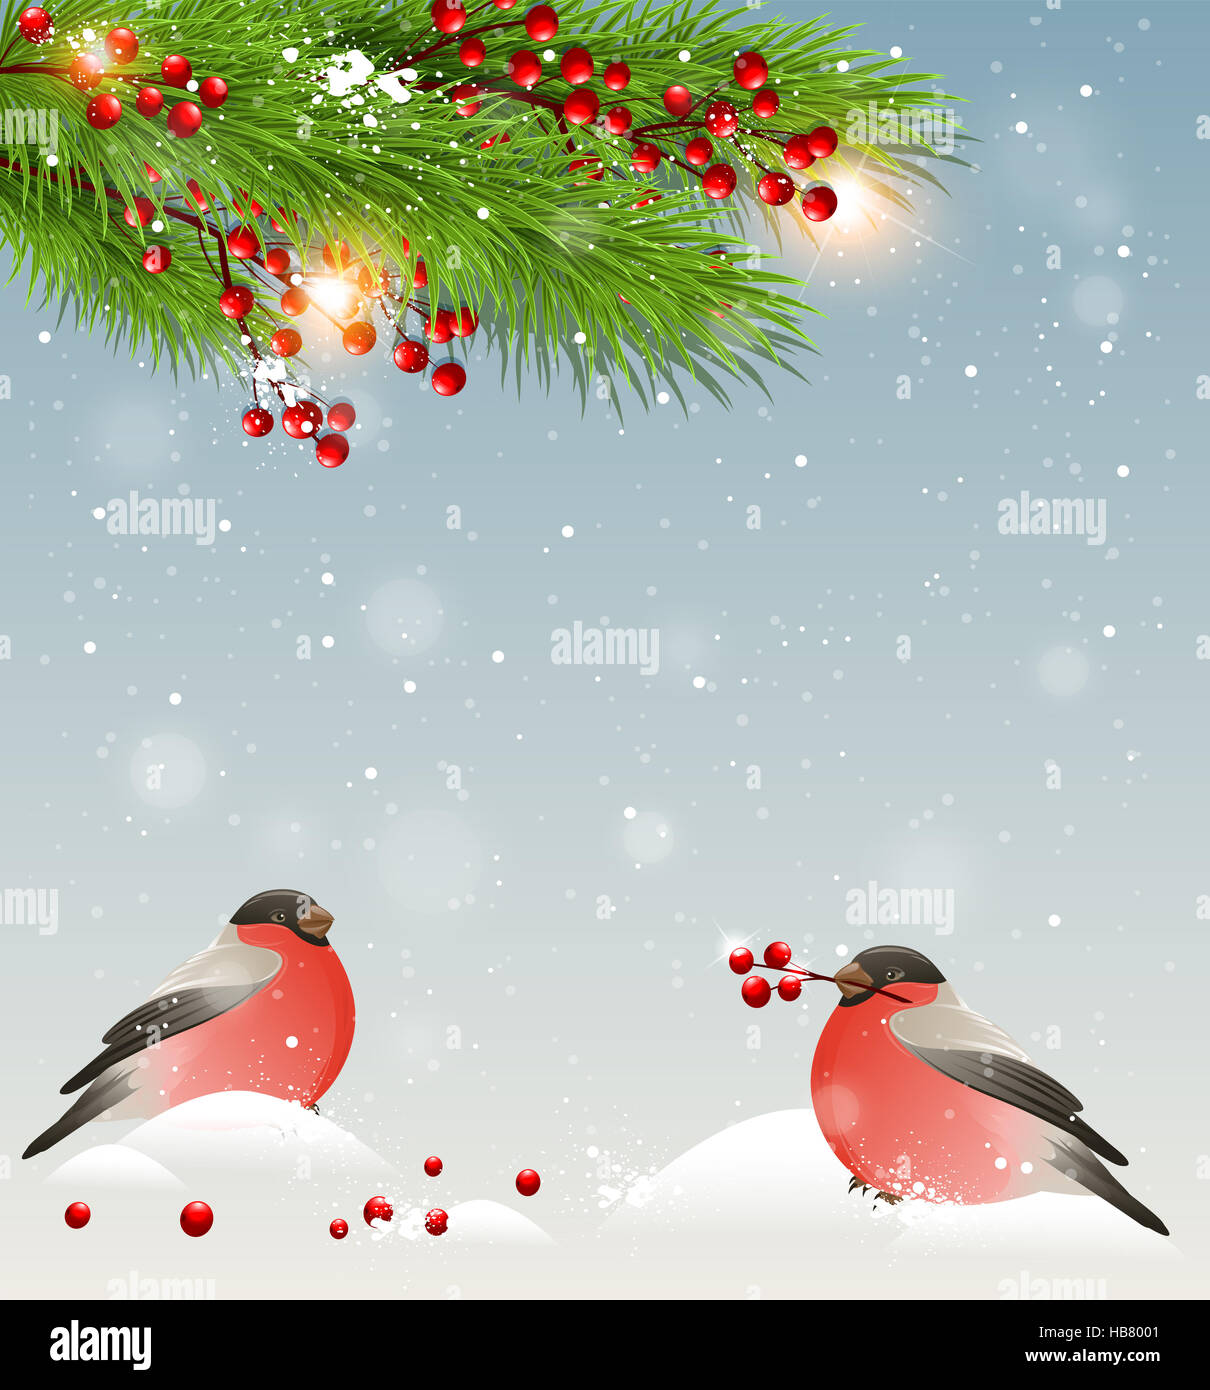 Winter Landscape With Two Bullfinches In Snow Green Fir Branches And Red Berries Christmas